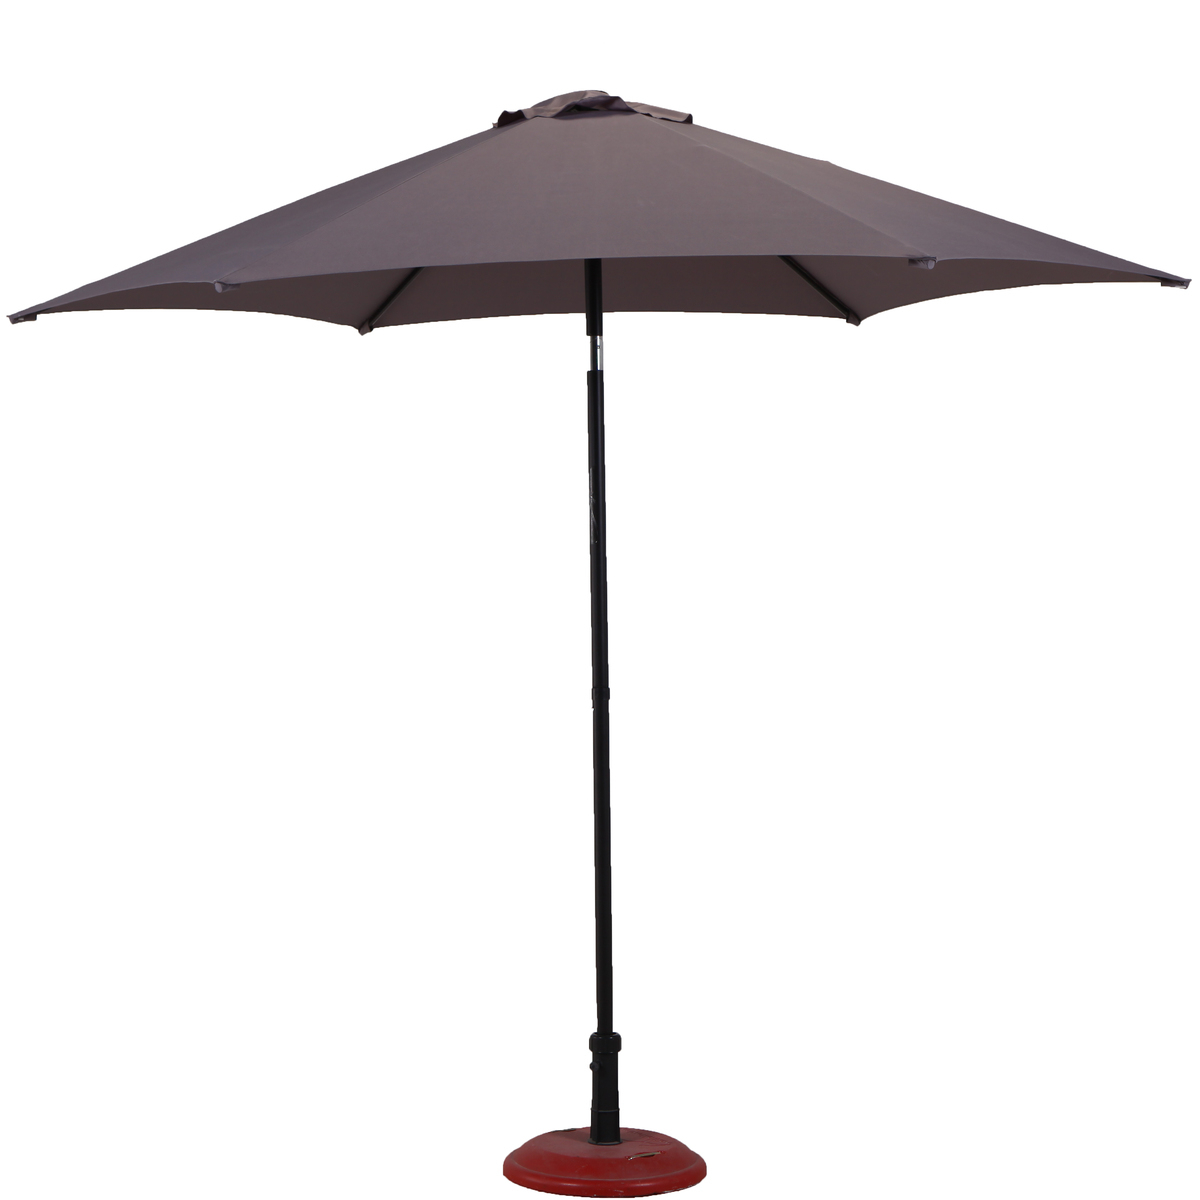 Market Umbrellas Intended For Recent House & Home Market Umbrella (View 14 of 20)